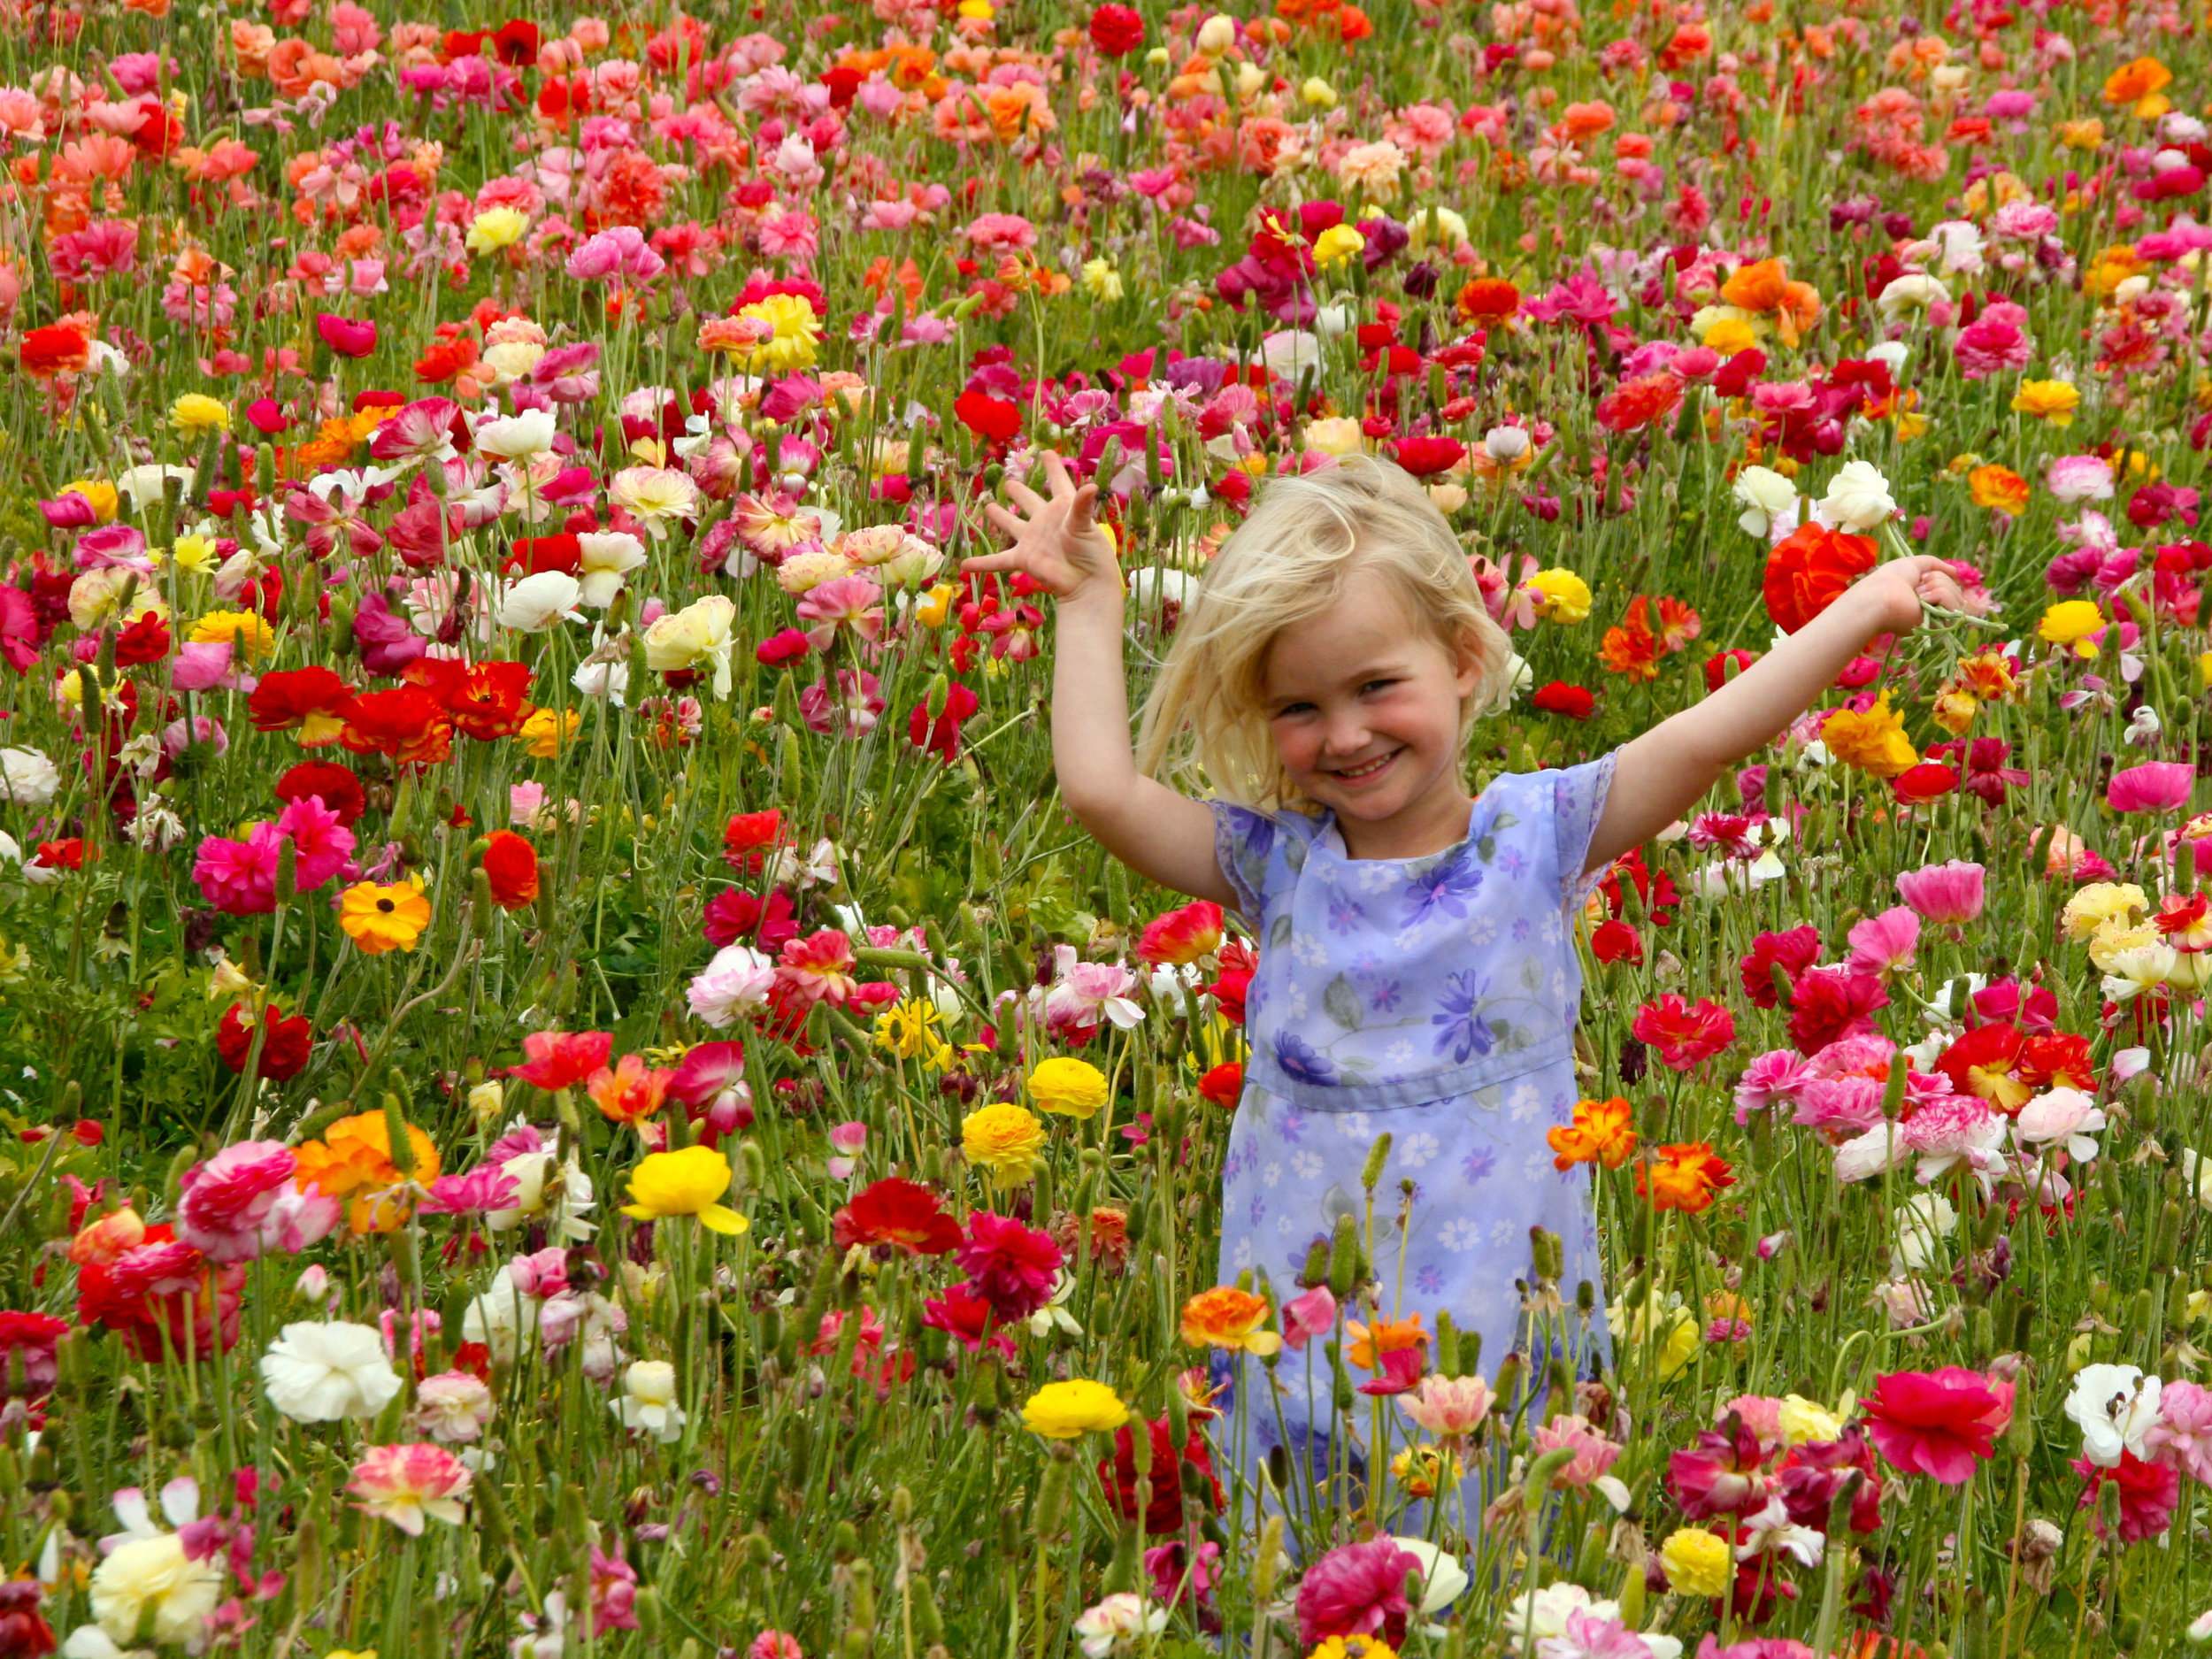 Child, Flower Fields.jpg